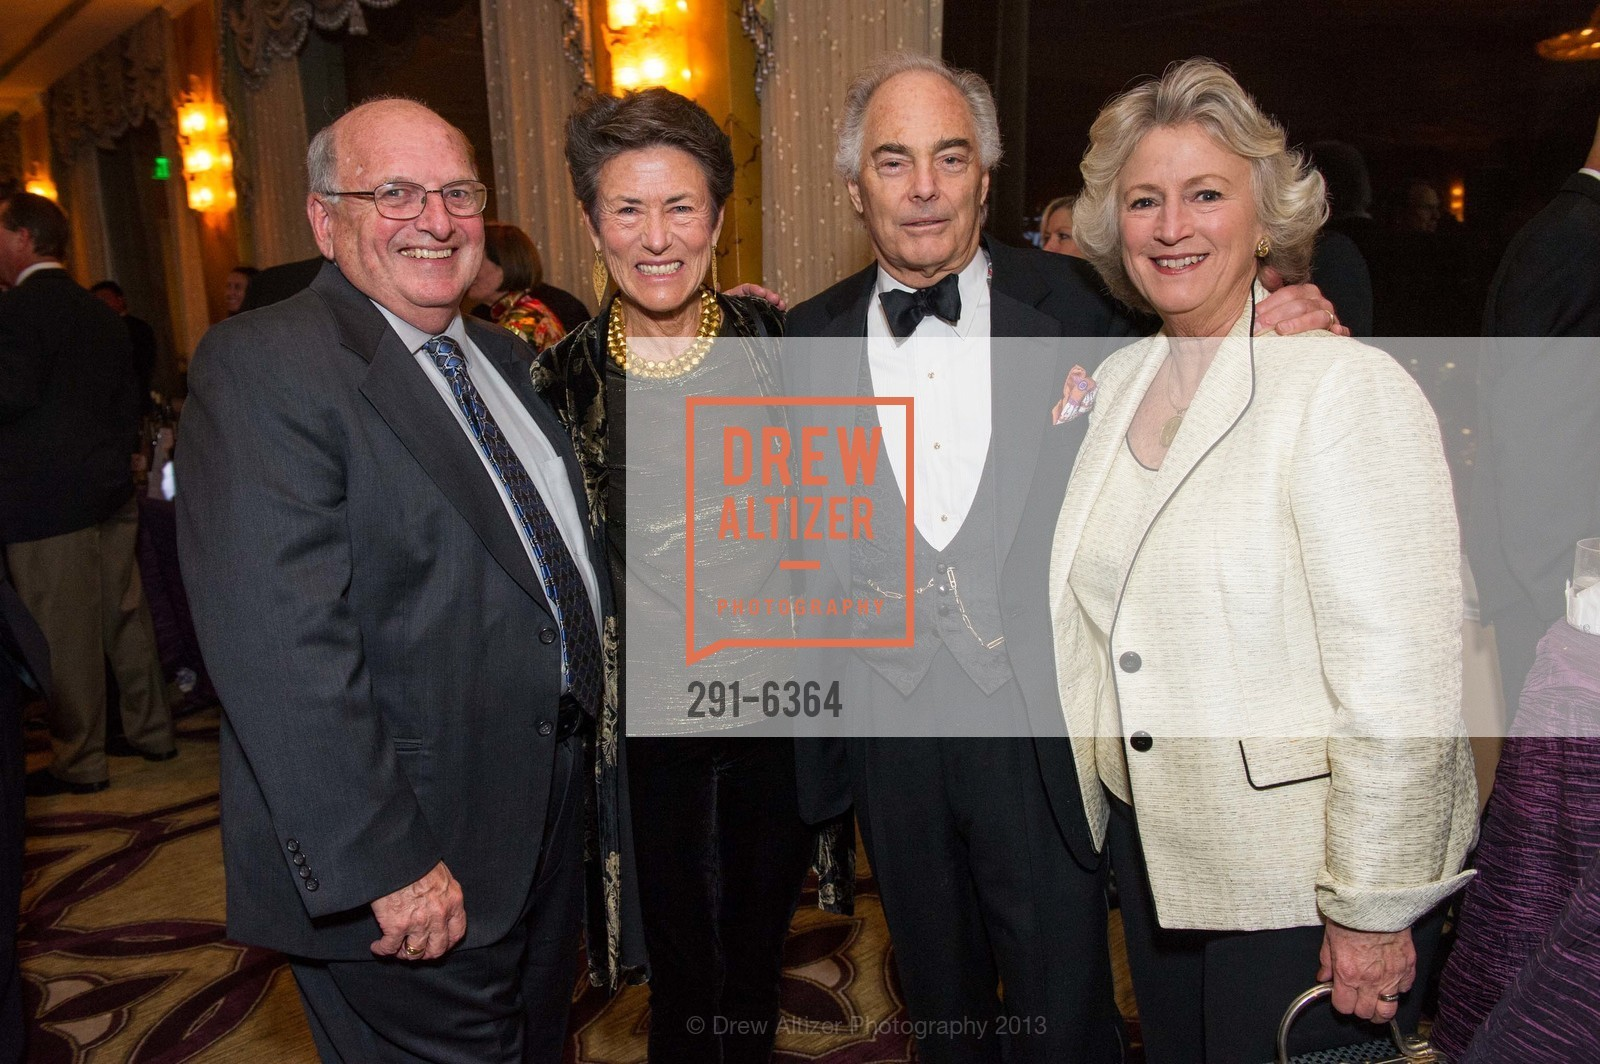 Dennis Fama, Maria Quinn, Martin Quinn, Cheryl Fama, 25th Anniversary Holiday HOB NOB ON THE HILL, US, December 6th, 2013,Drew Altizer, Drew Altizer Photography, full-service agency, private events, San Francisco photographer, photographer california